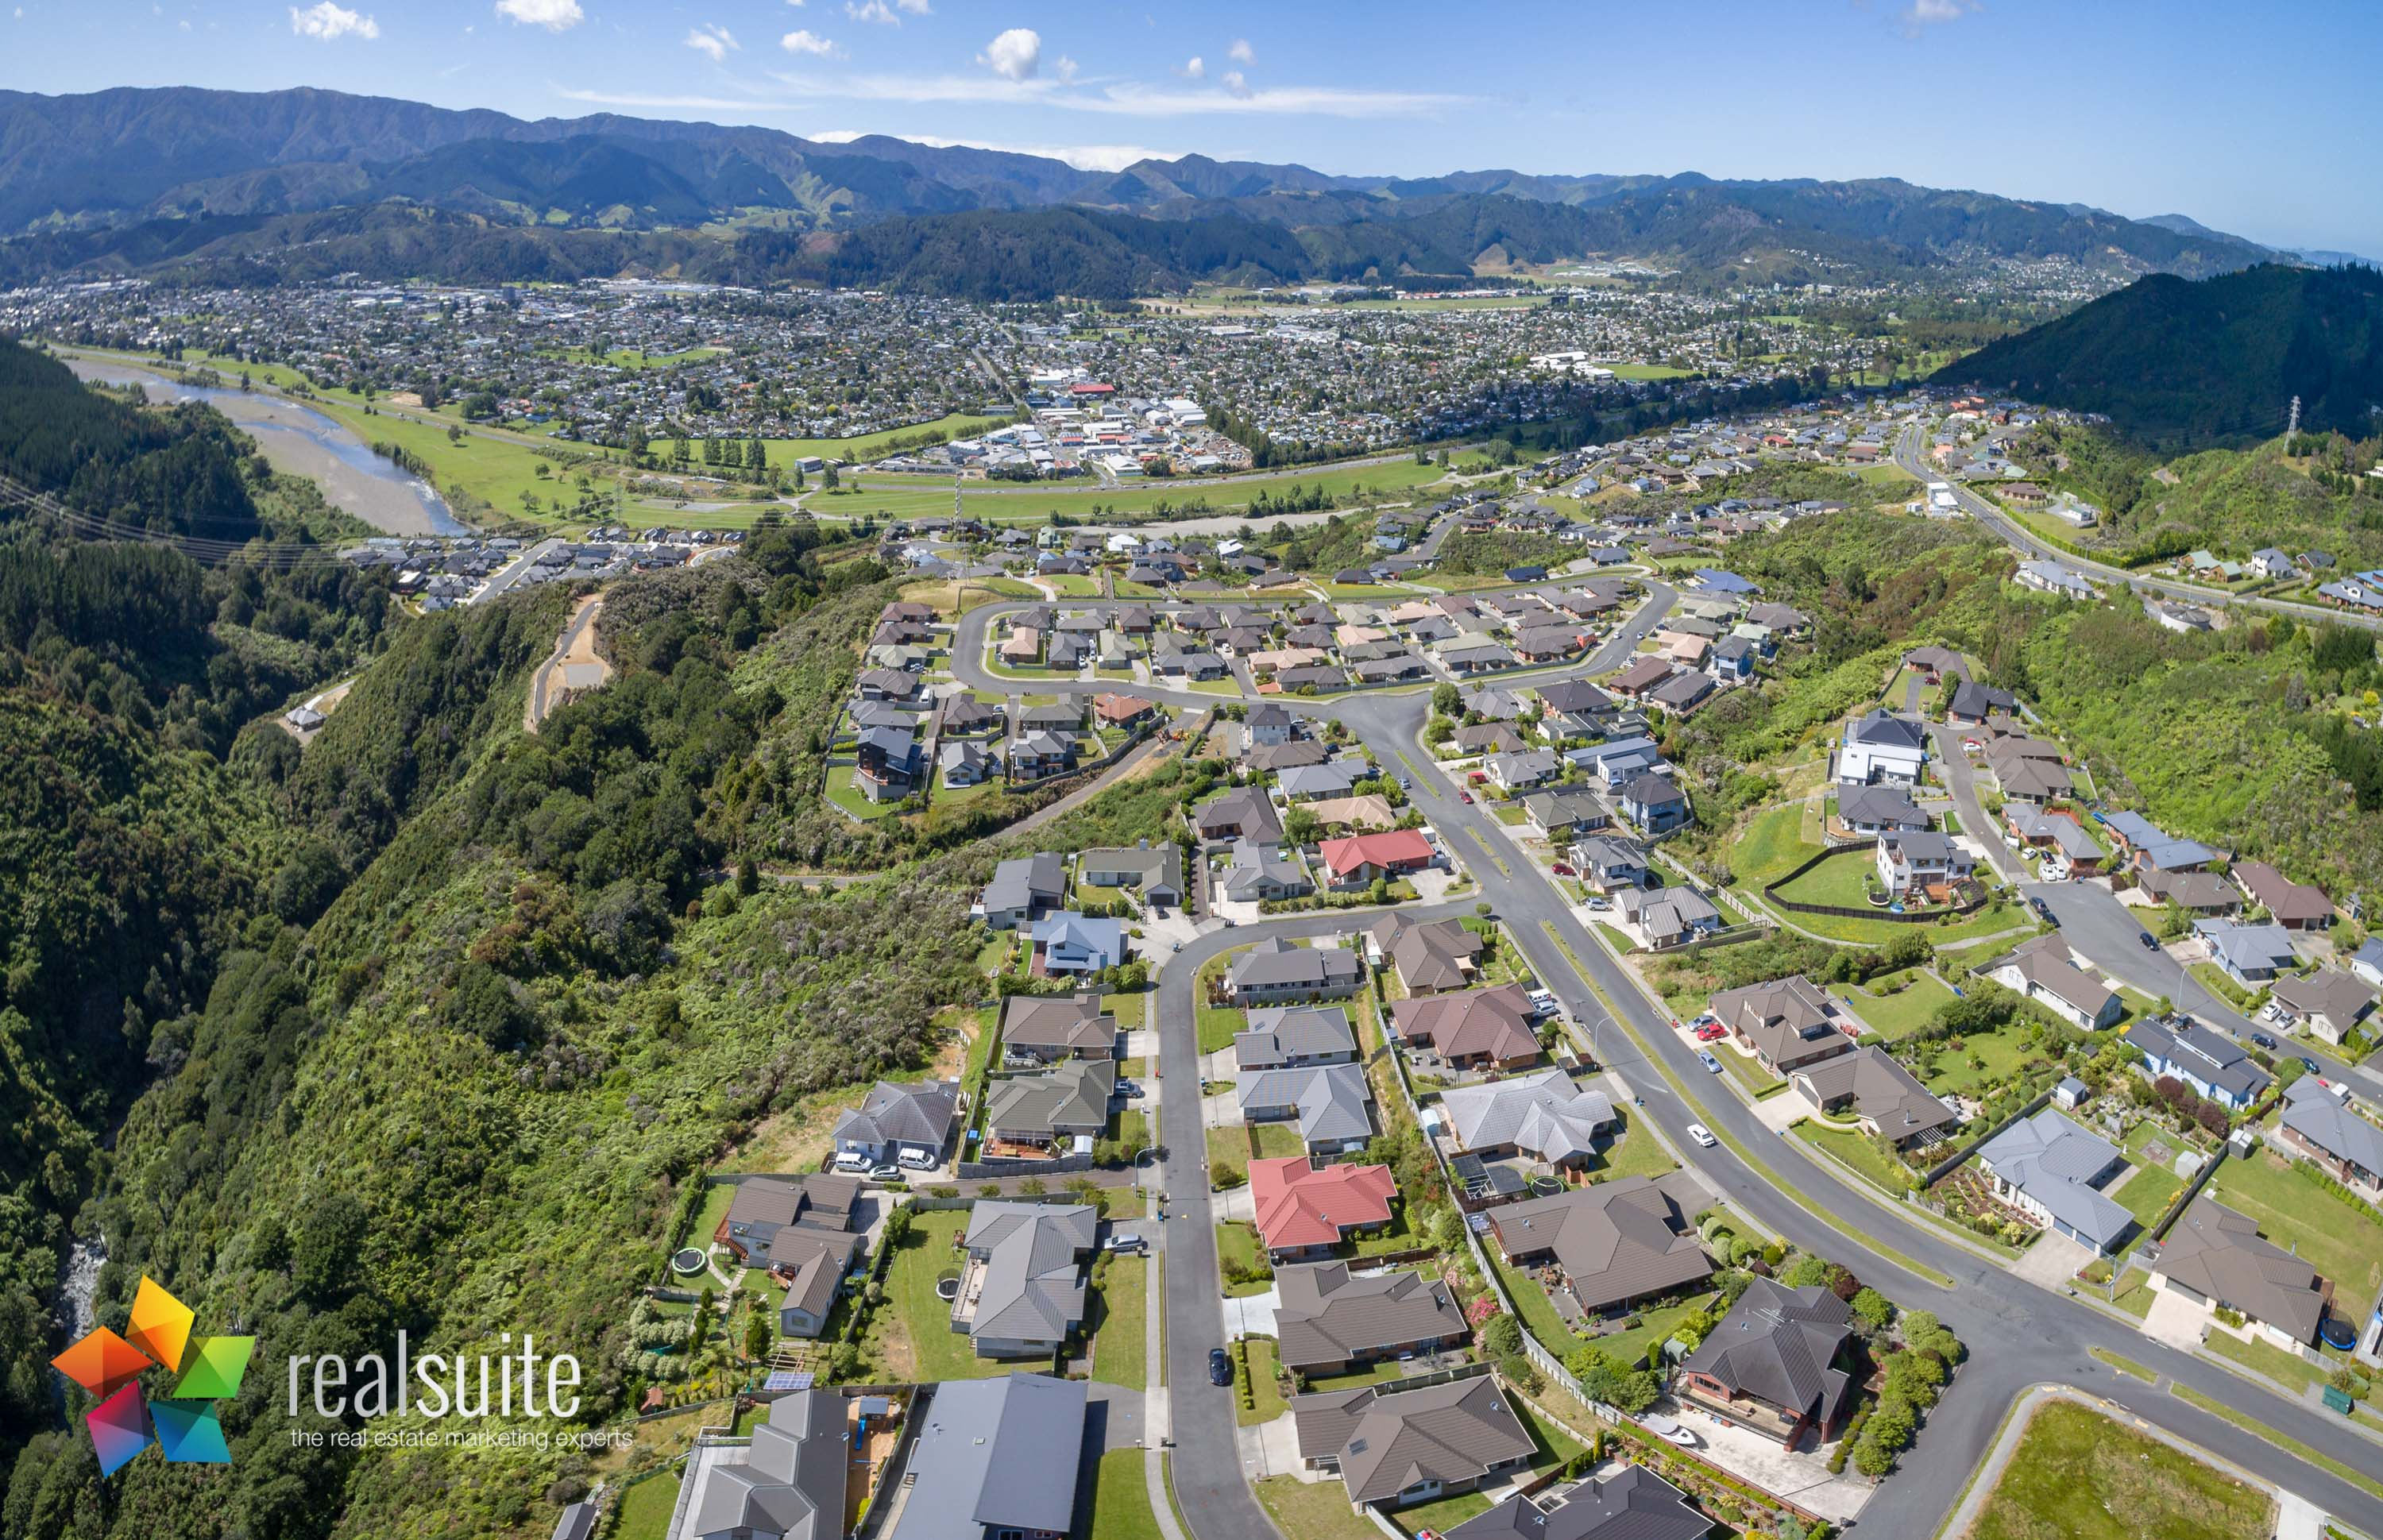 9 McEwen Crescent, Riverstone Terraces Aerial 0447-Pano